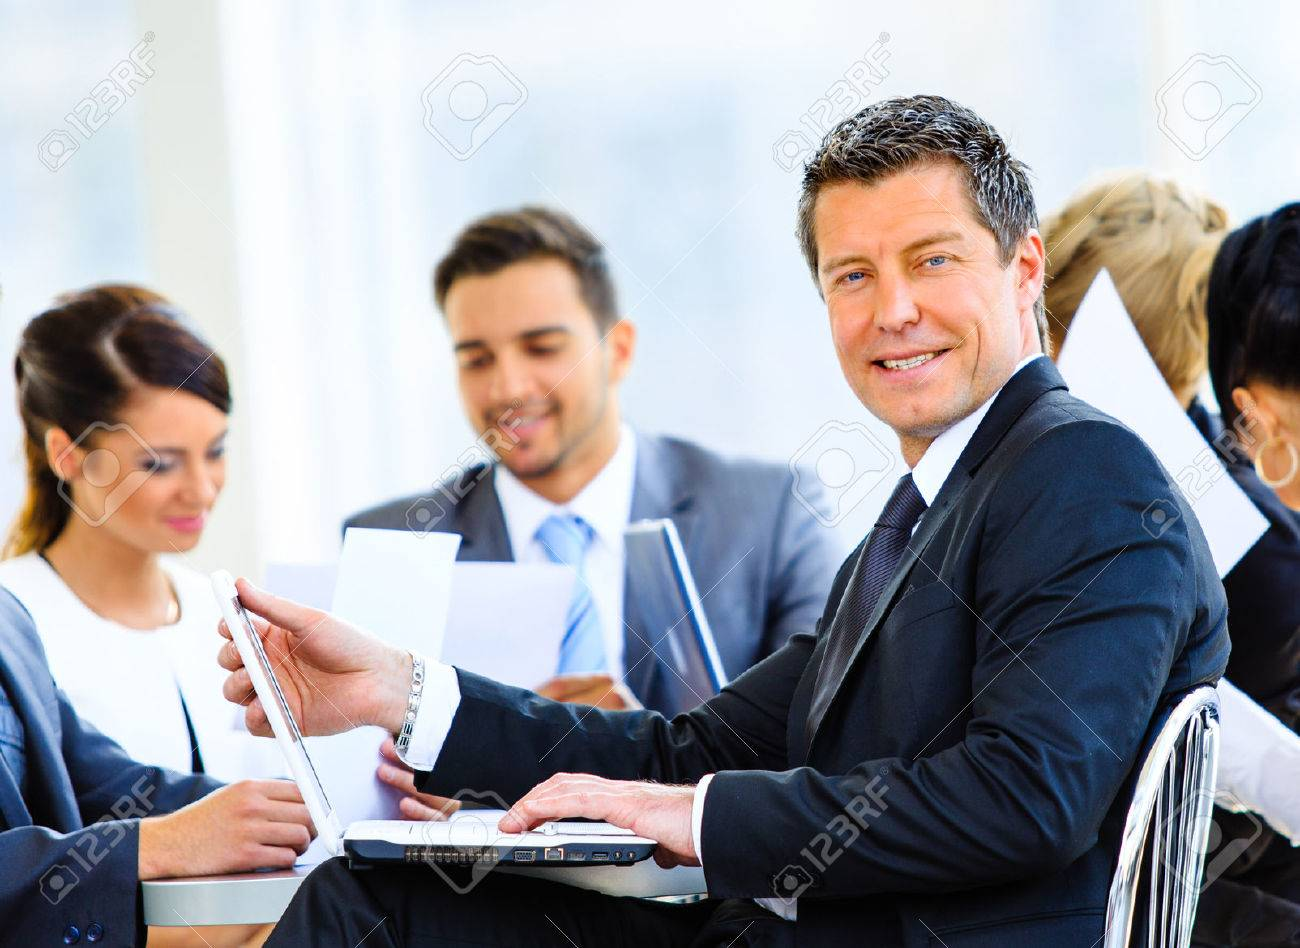 Portrait of young handsome businessman in office with colleagues in the background Standard-Bild - 34354306